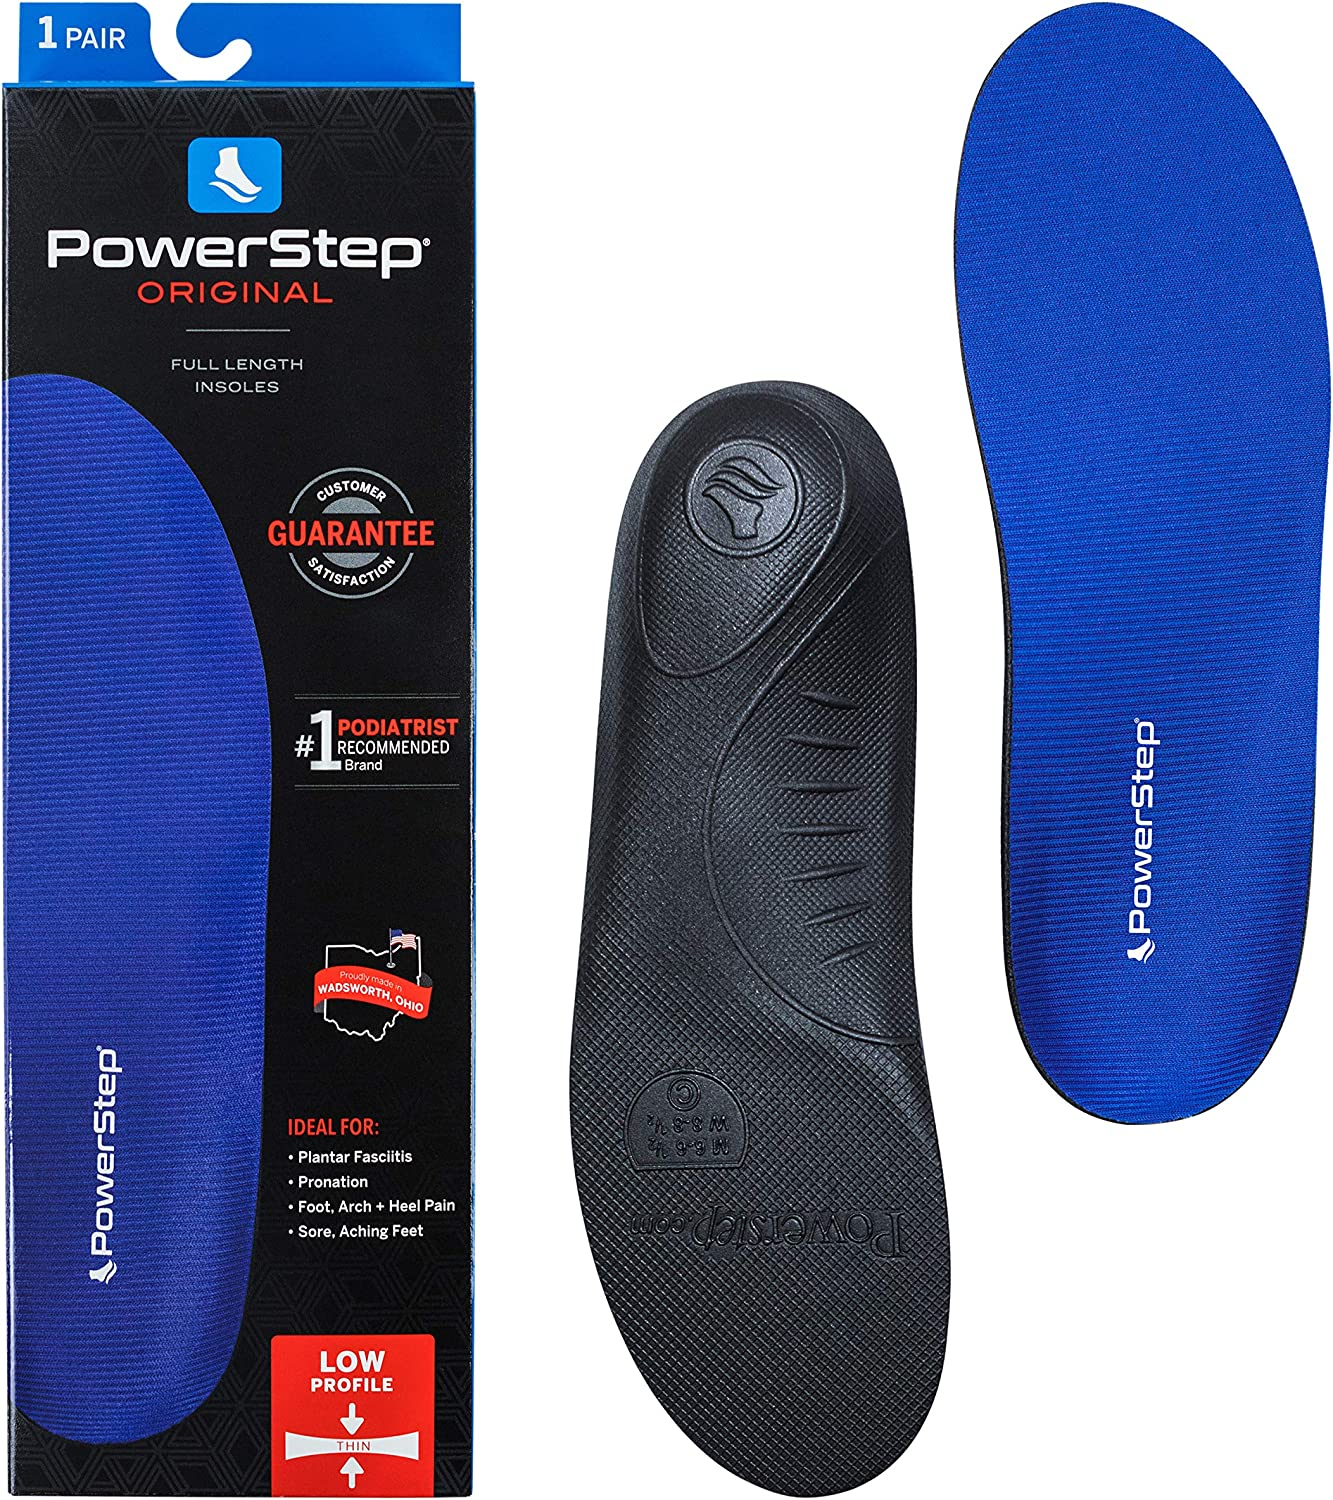 PowerStep Original Insoles, Low Profile Arch Supporting Shoe Insert, Insoles Designed to Relieve and Prevent Foot Pain